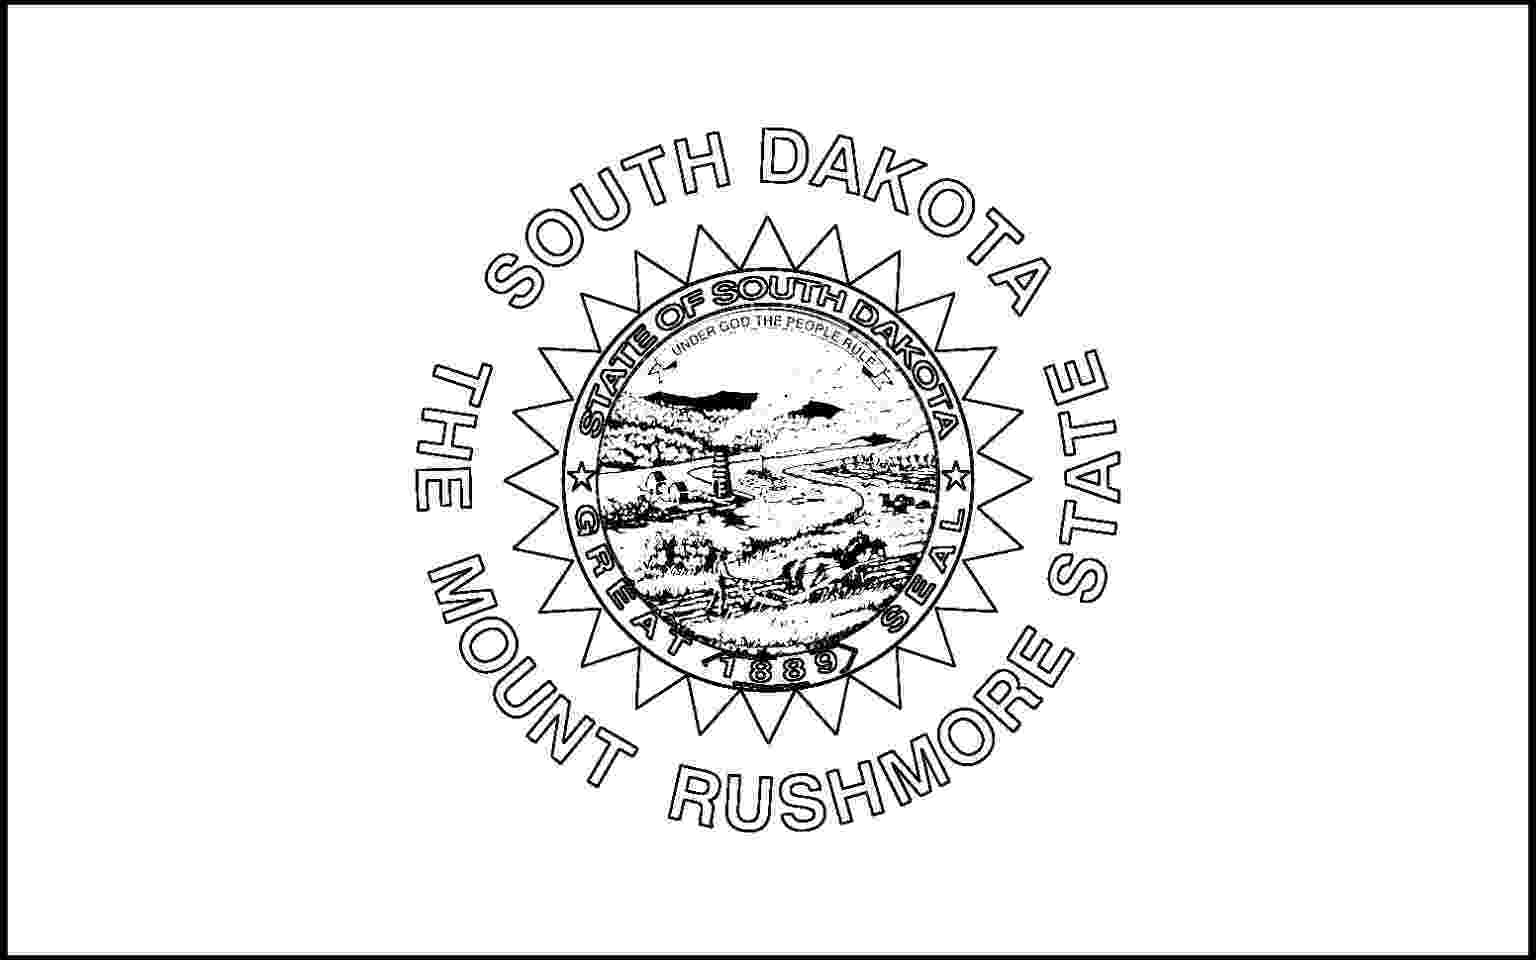 south dakota state flag coloring page south dakota flag coloring page thousand of the best page coloring flag dakota south state